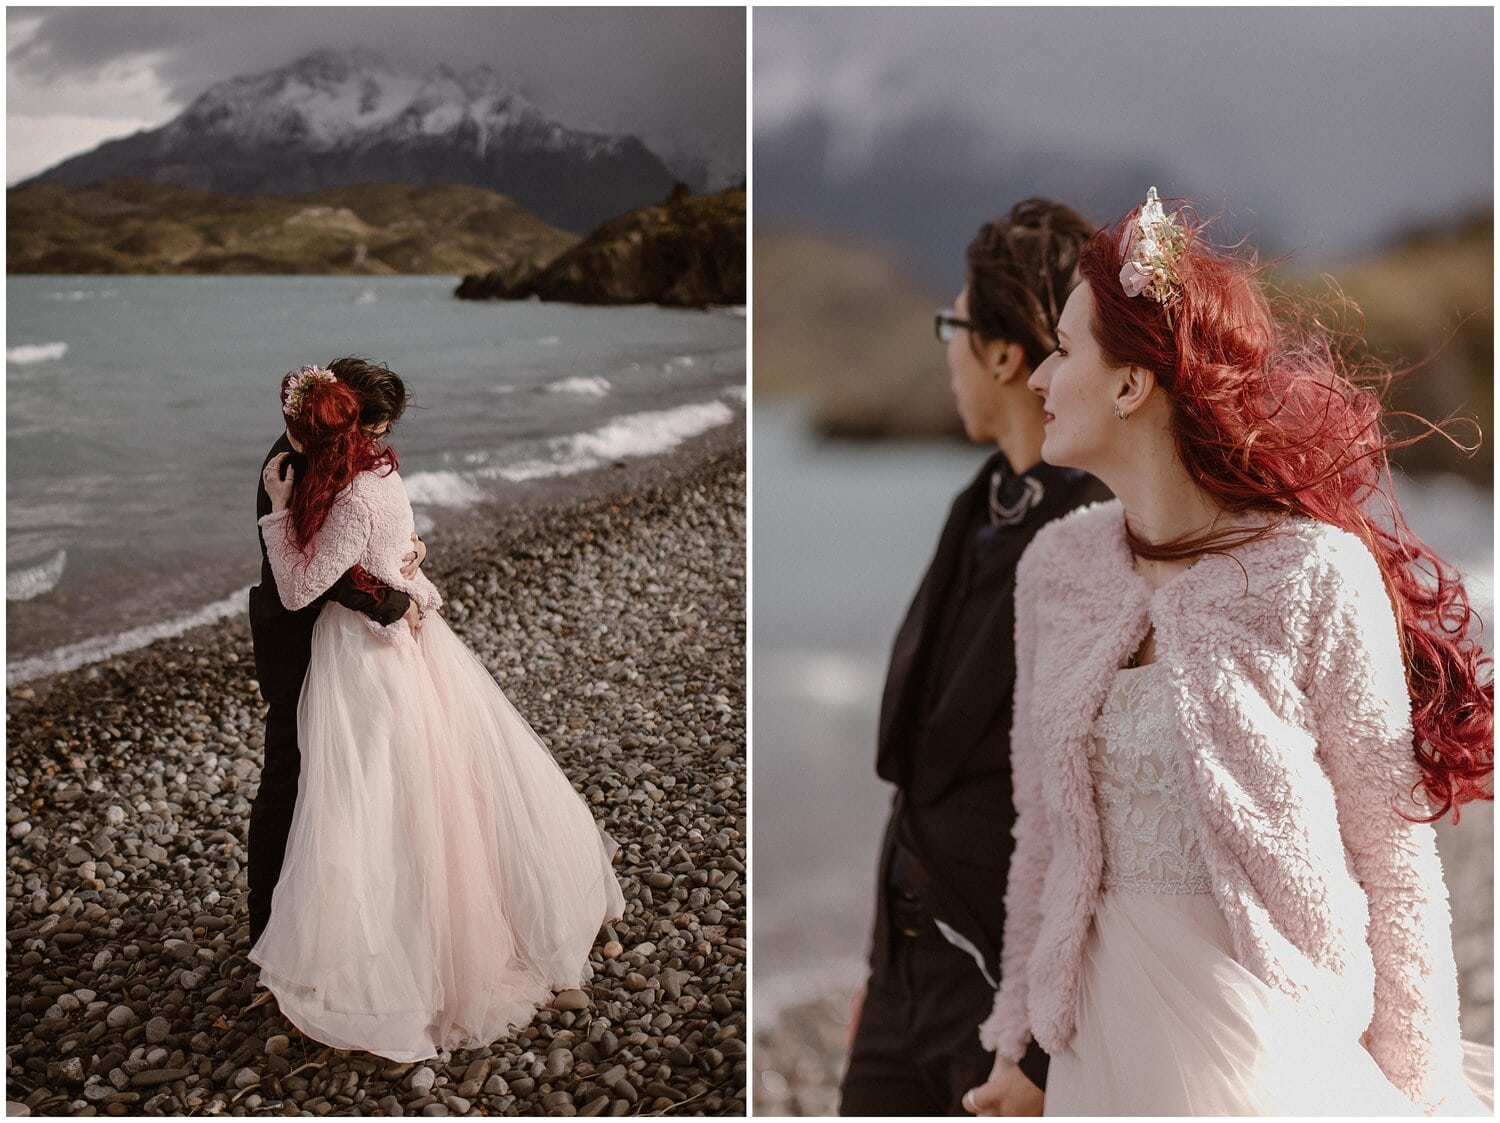 A couple embrace and hold hands on their wedding day in Patagonia.